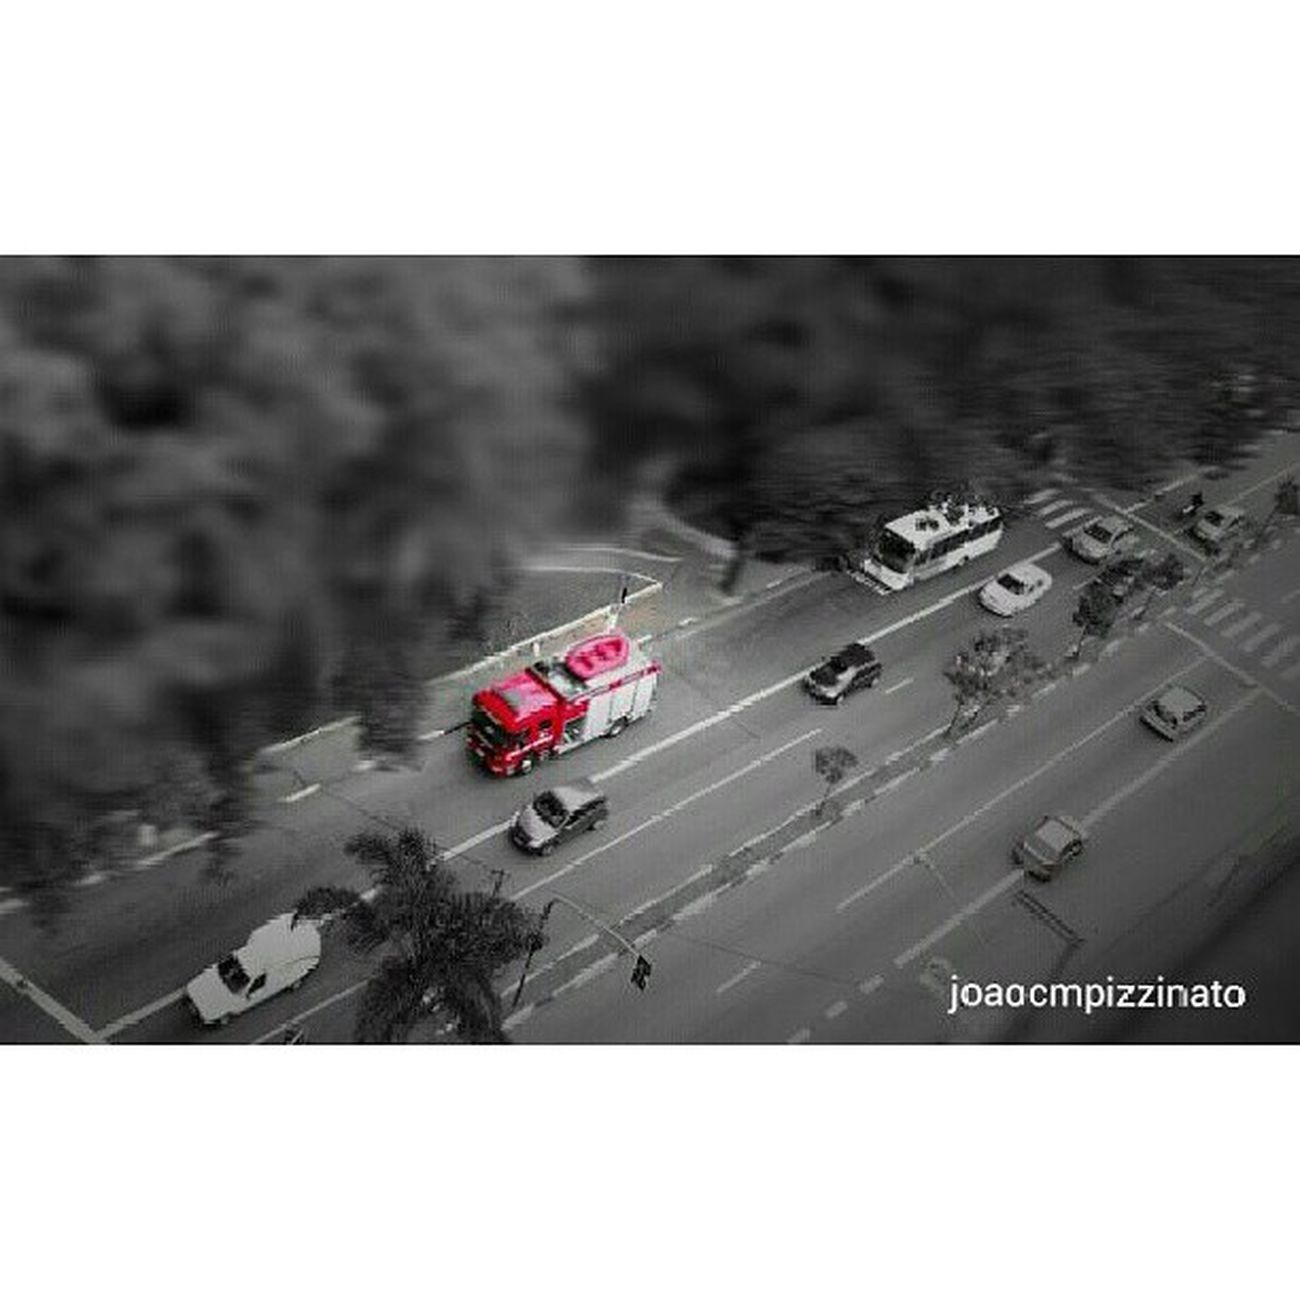 Rescue. AwesomeMiniature Effect Rescue City zonasul saopaulo brasil photography amorpaulista BrazilinGram sp360graus